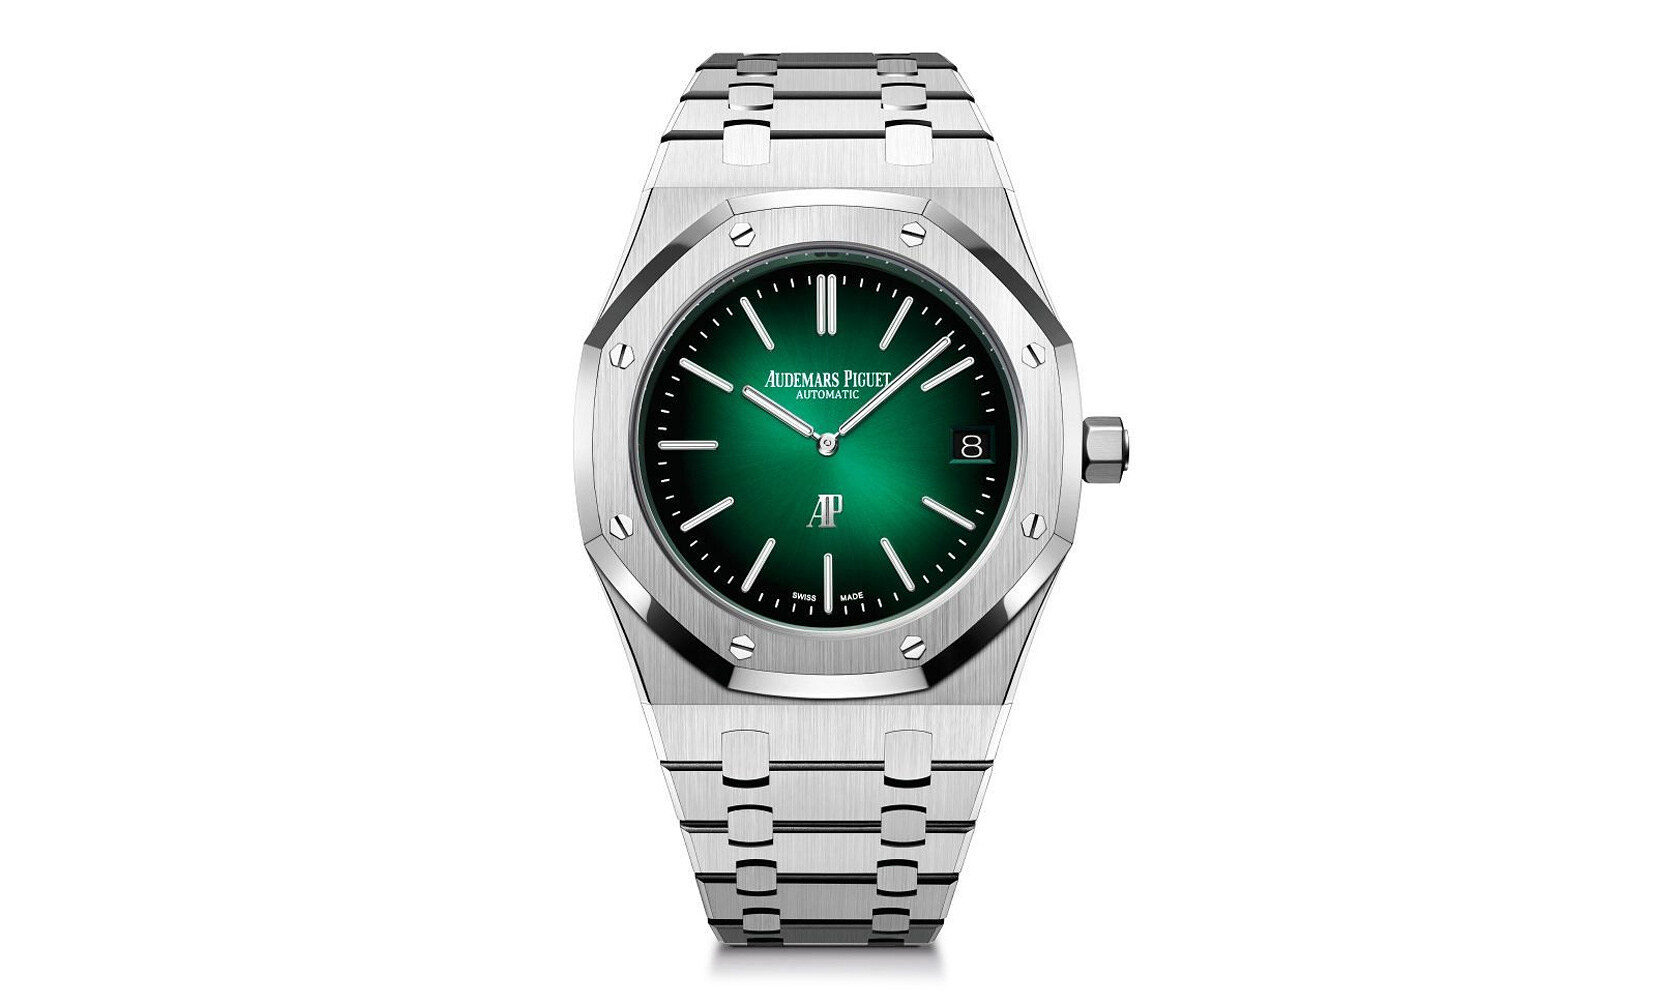 Audemars Piguet Royal Oak Jumbo Green Dial